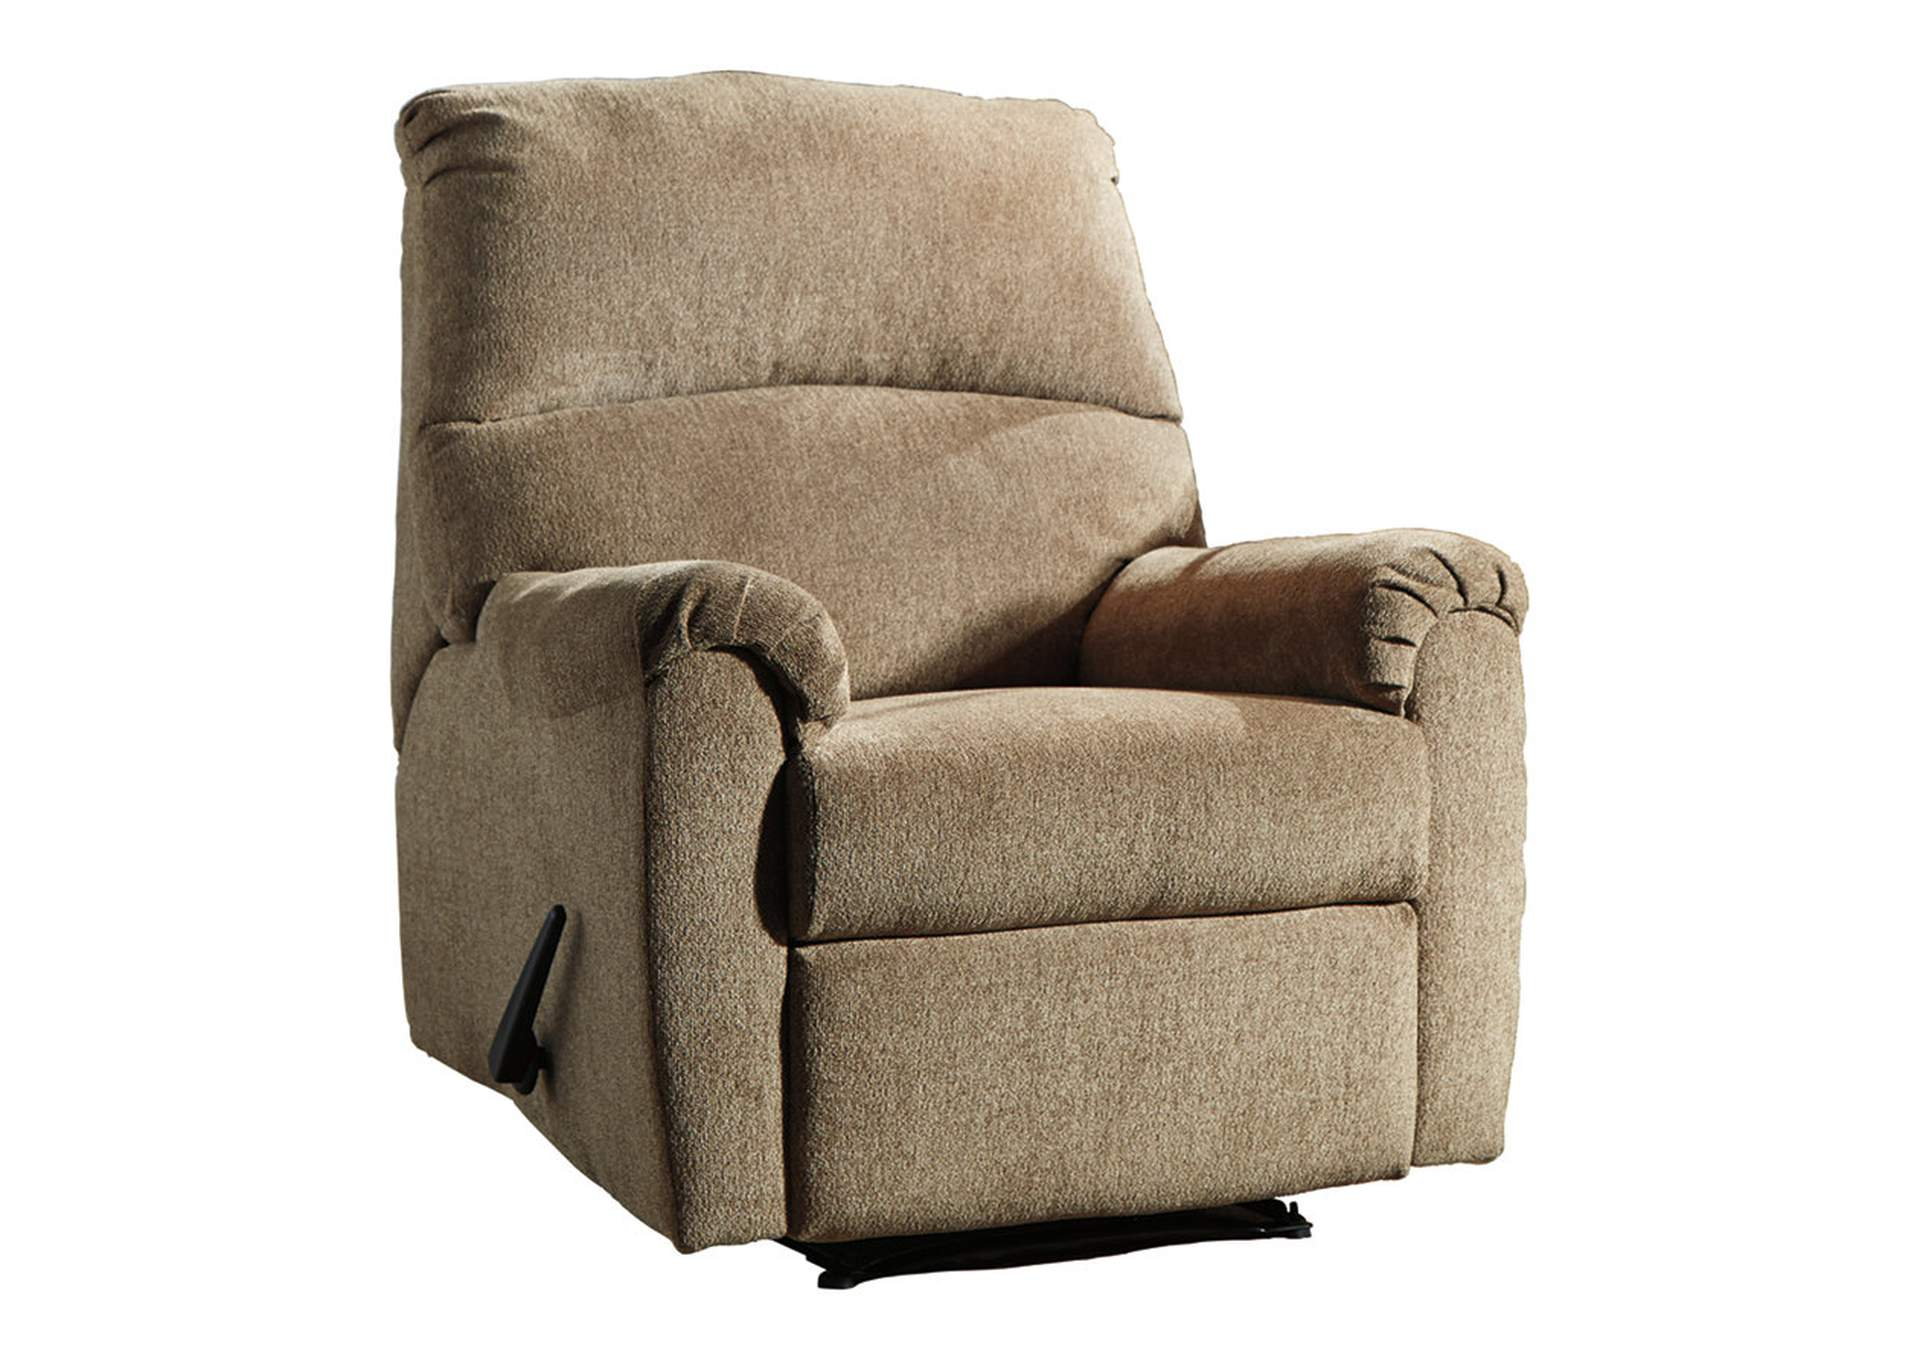 Nerviano Mocha Recliner,Signature Design By Ashley